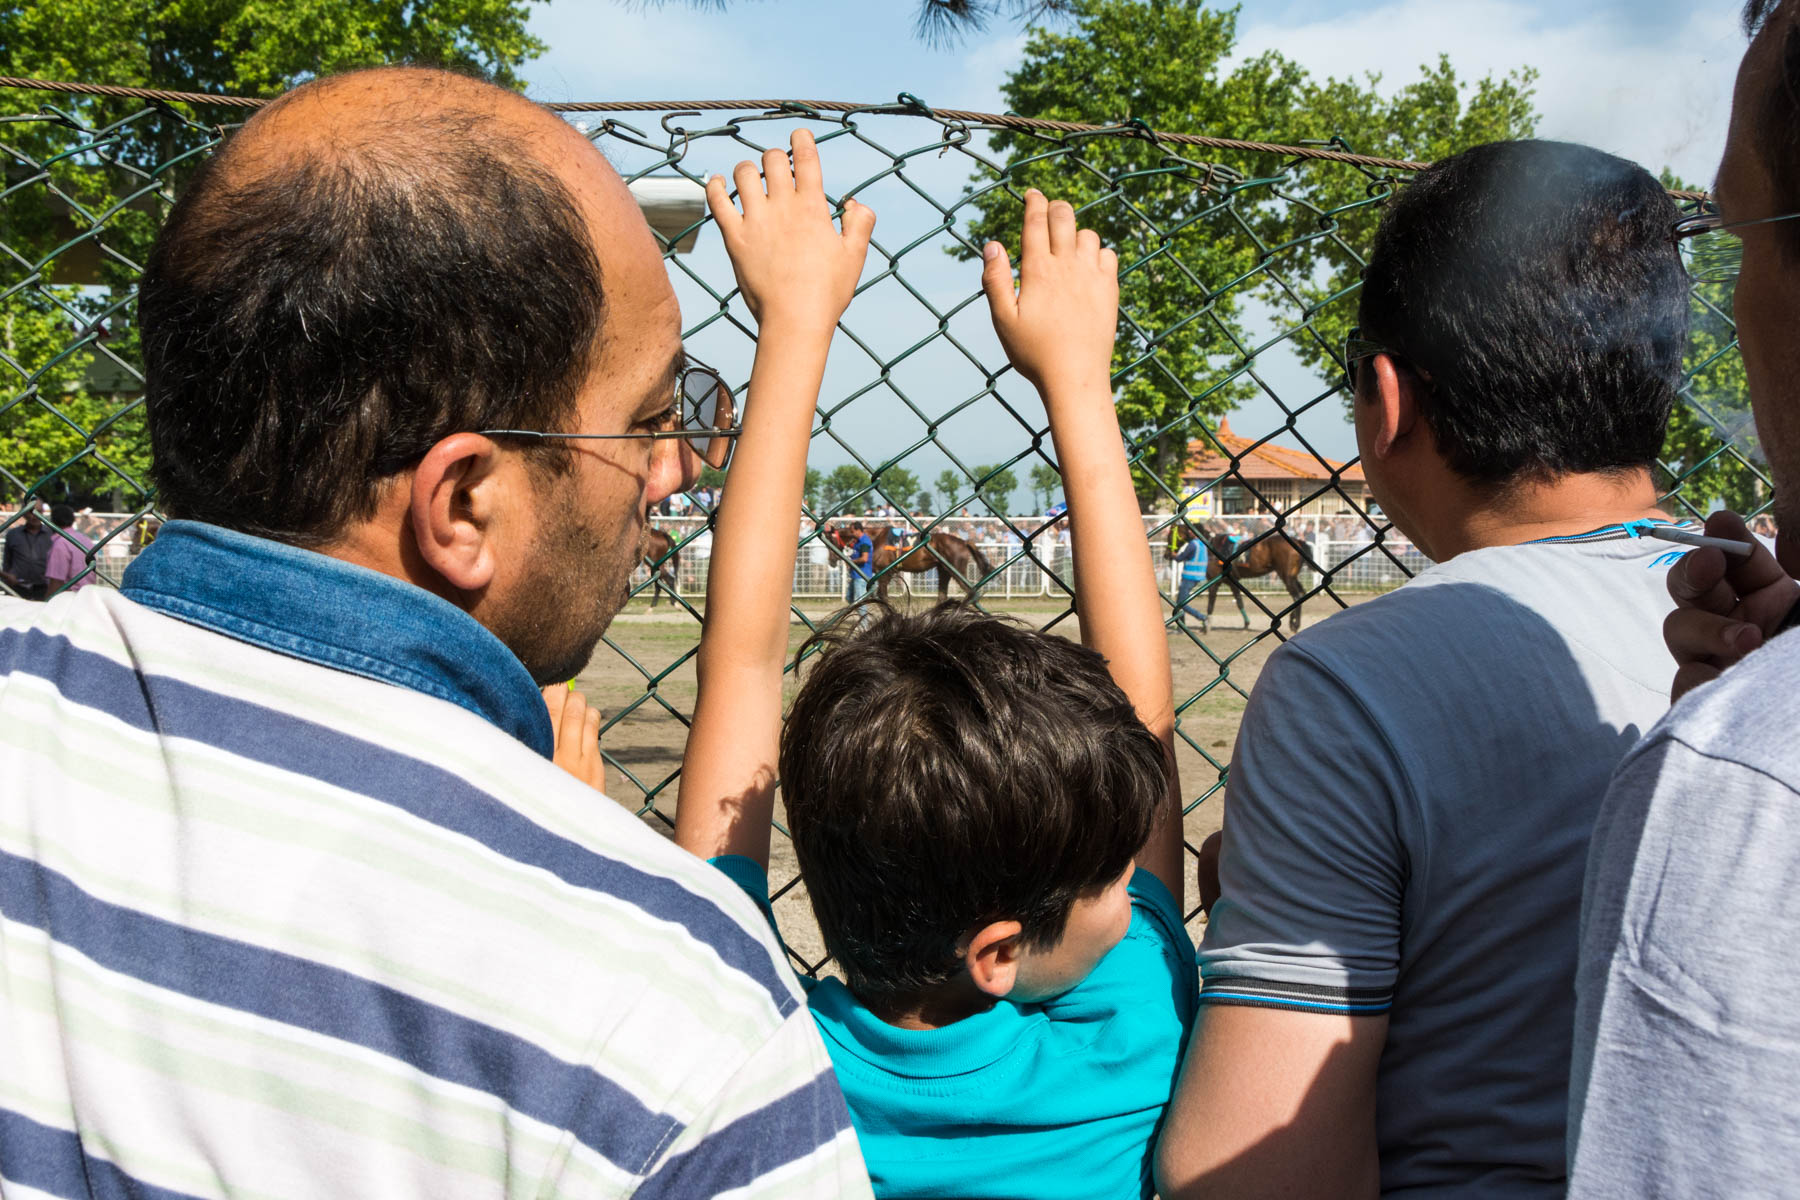 A boy watching the horses at the races in Gonbad Kavus, Iran